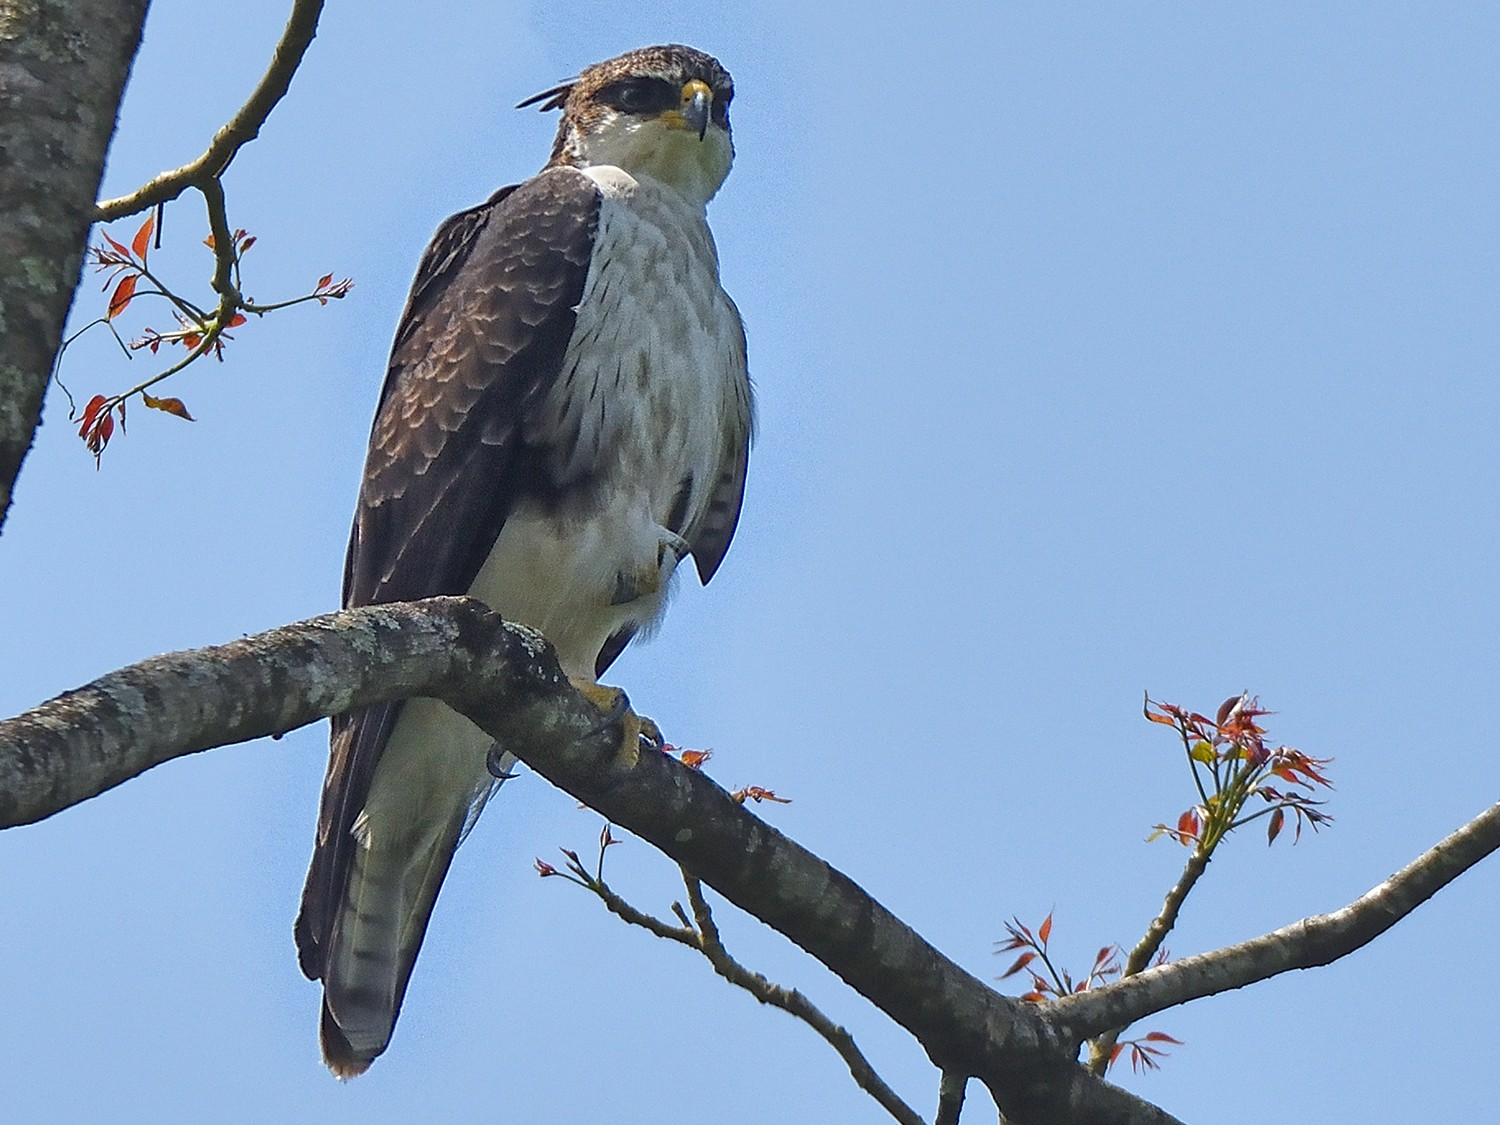 Rufous-bellied Eagle - Polly Kalamassery